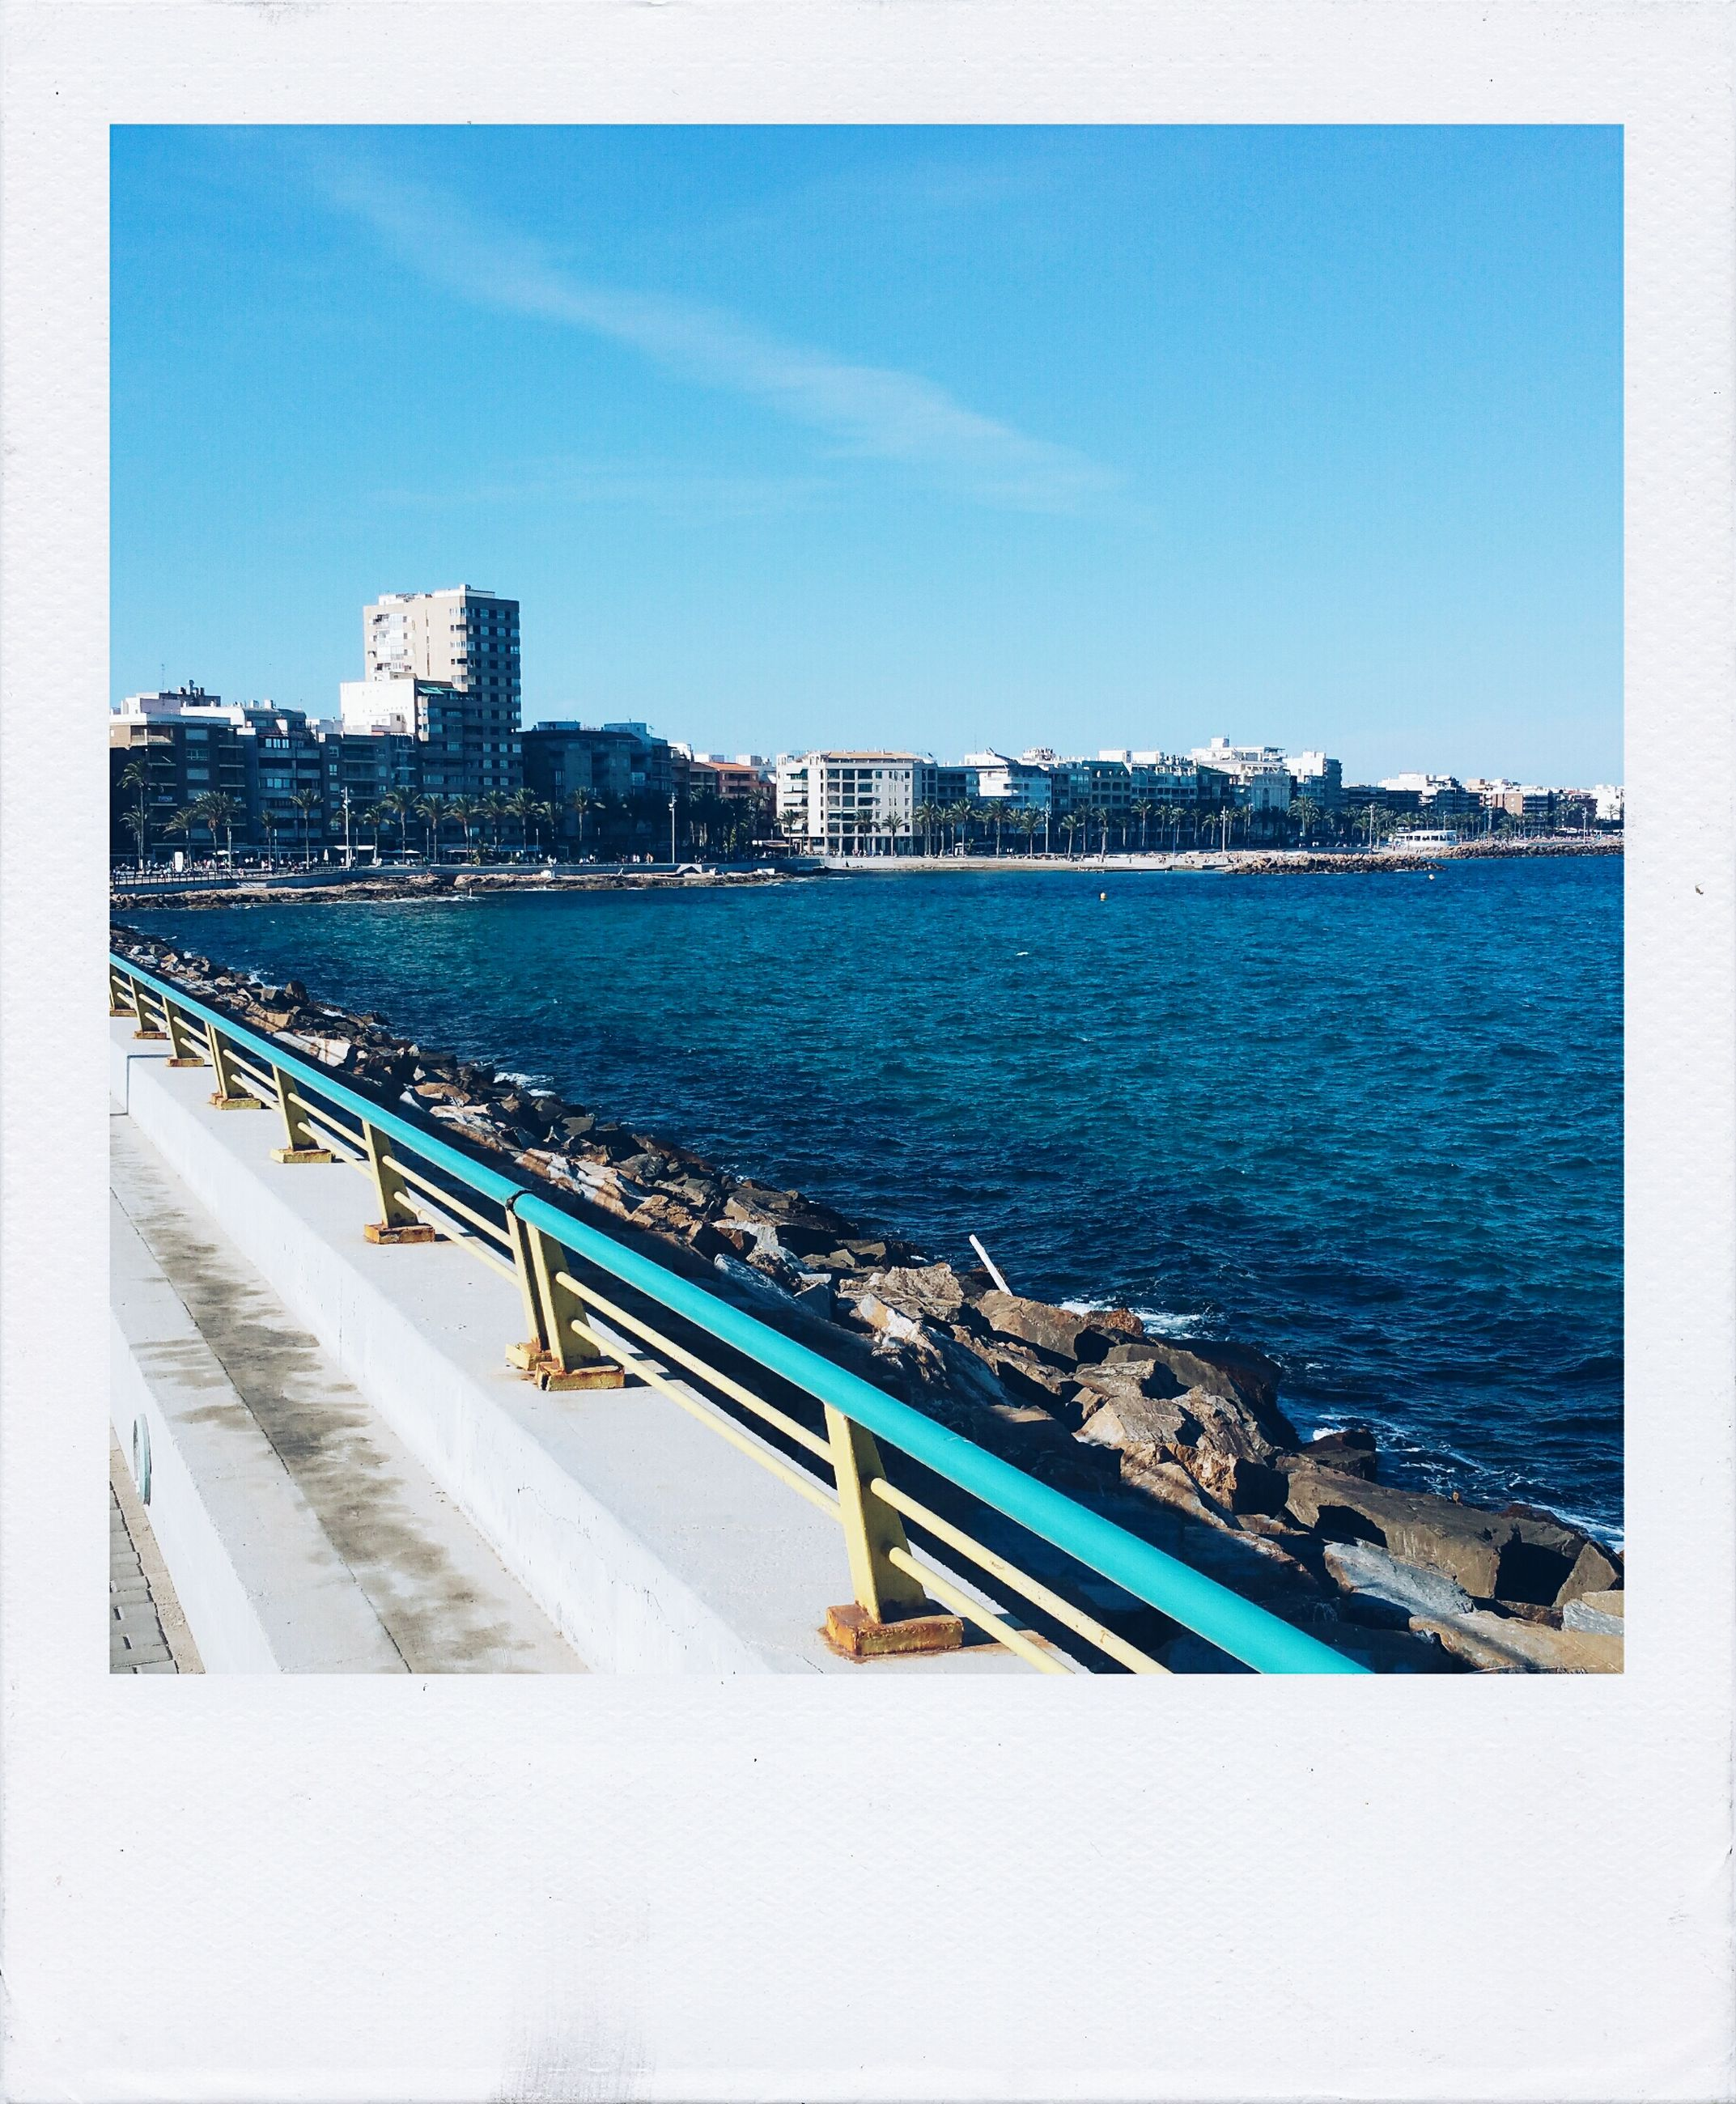 sea, beach, sky, sand, city, building exterior, no people, outdoors, built structure, clear sky, architecture, day, water, urban skyline, scenics, horizon over water, snow, nature, cityscape